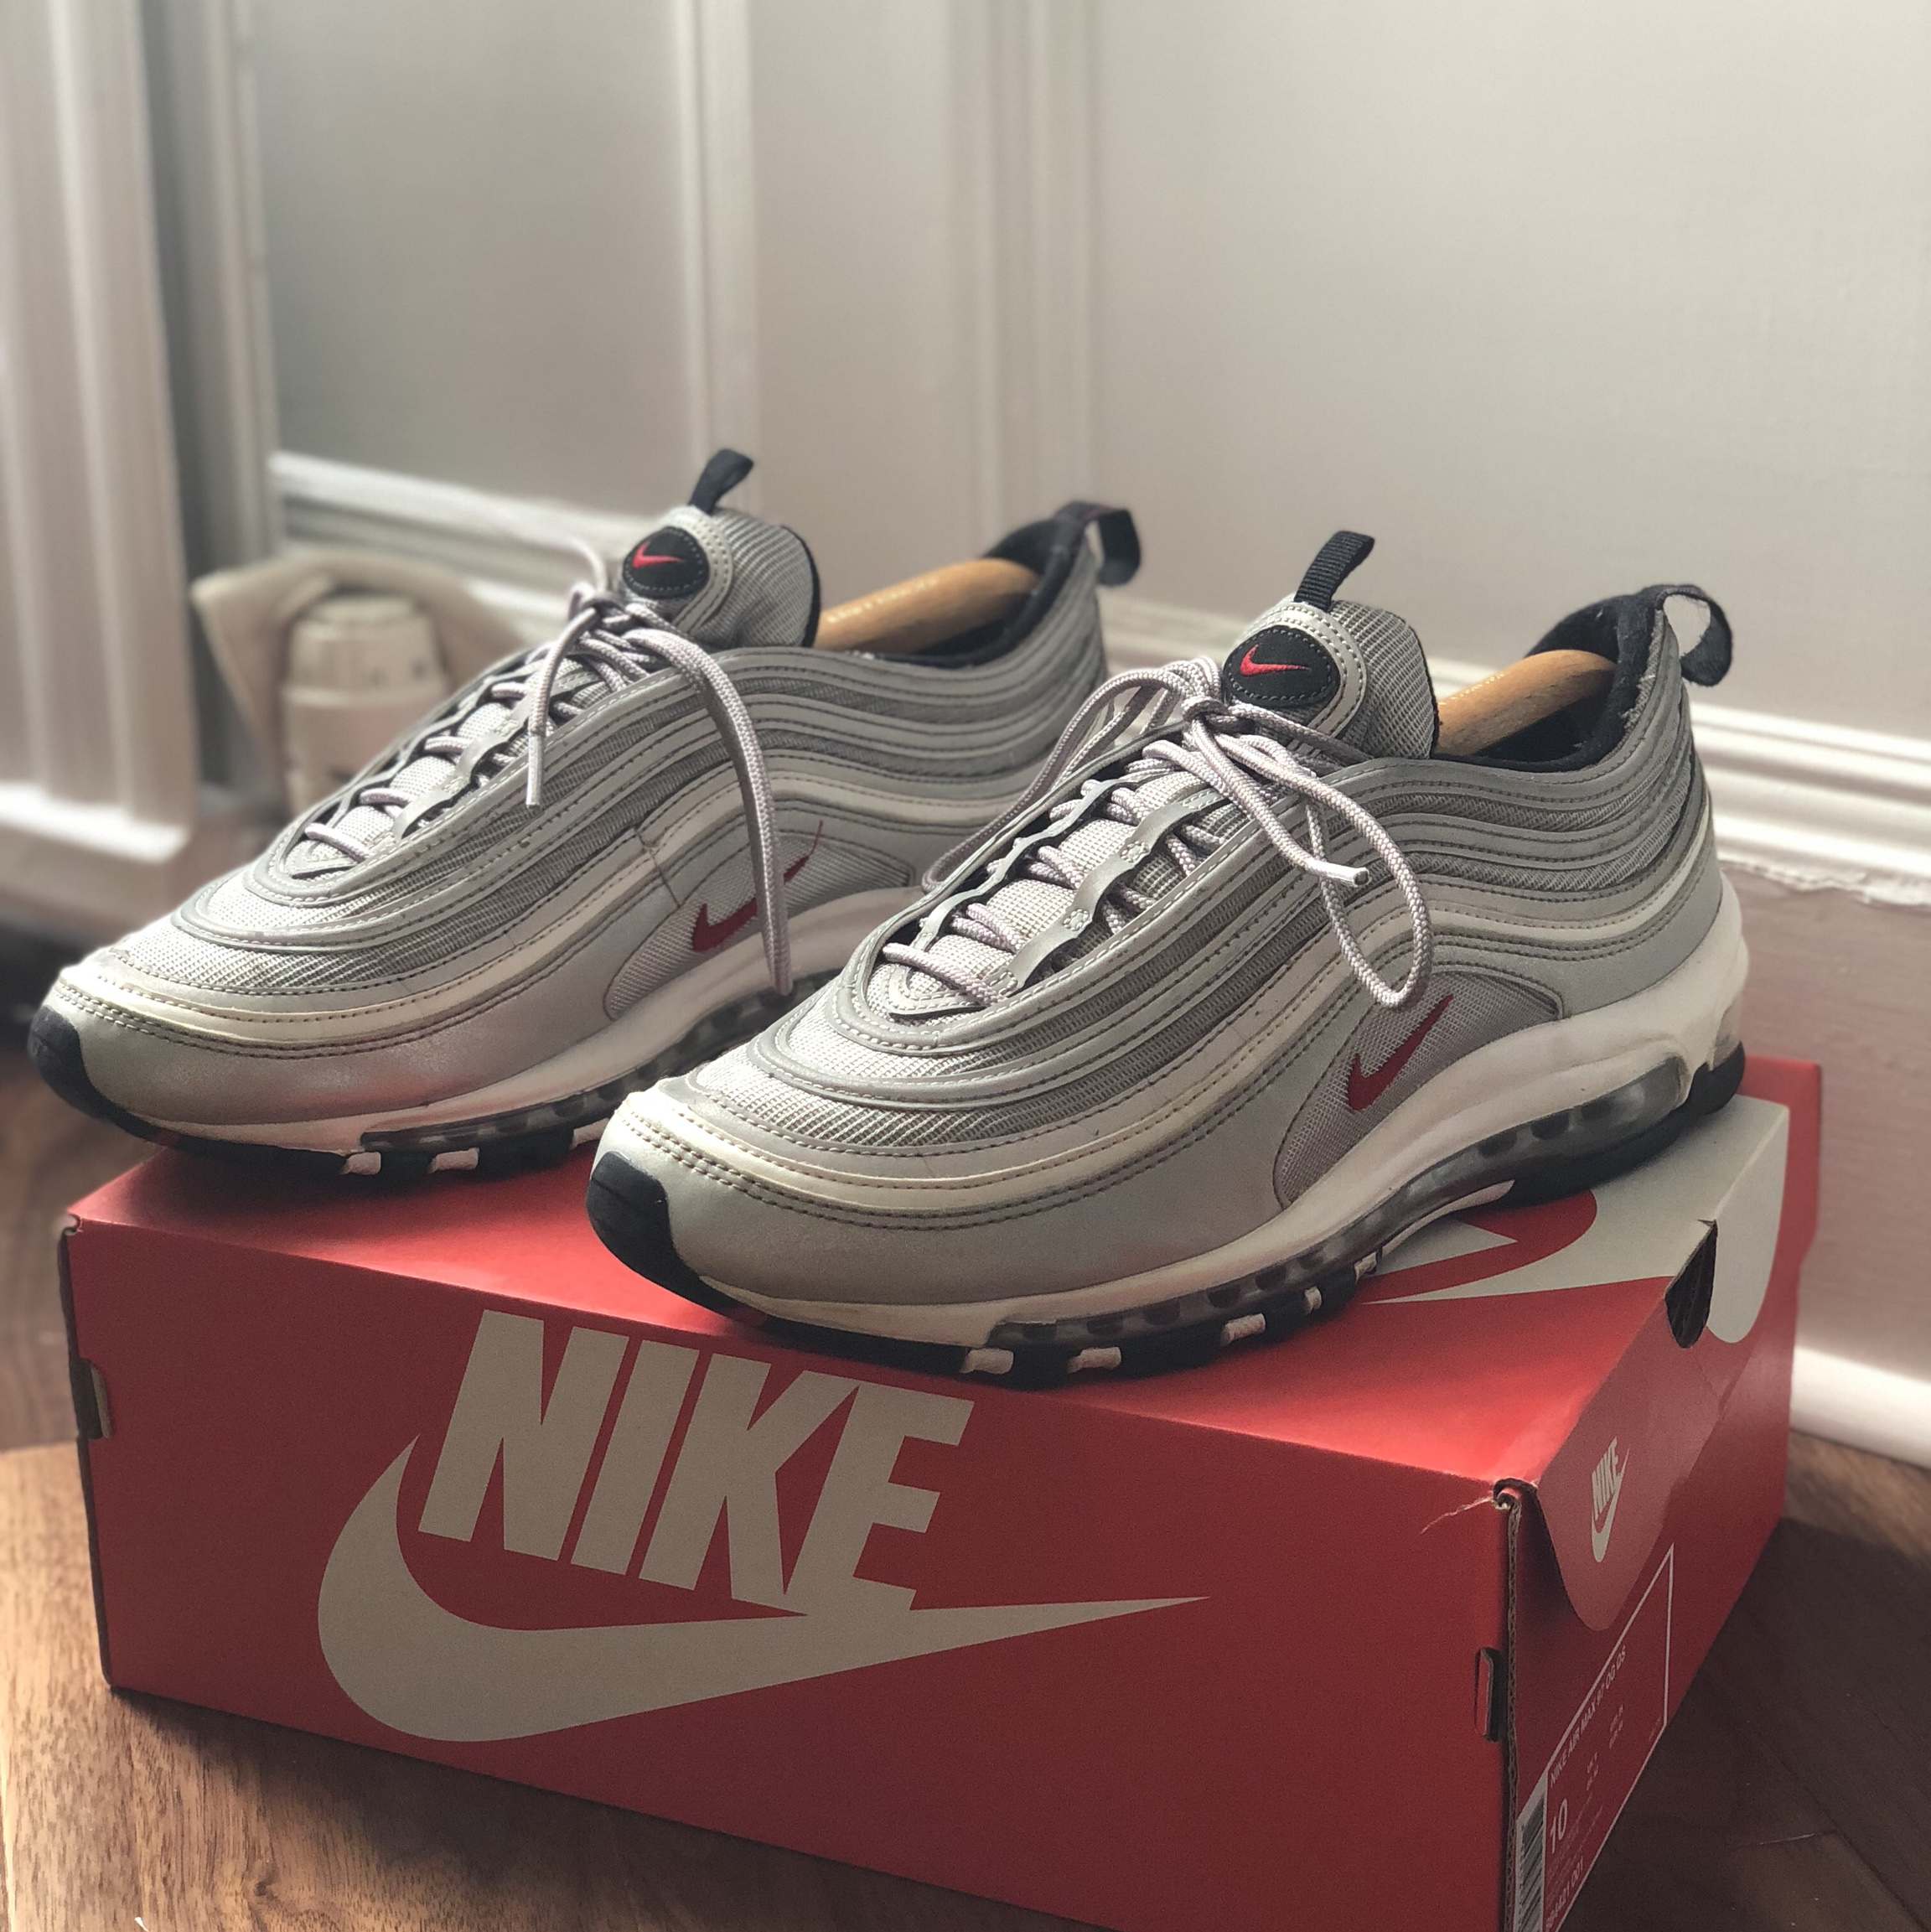 Nike Air Max 97 'Silver Bullet' Limited edition, Depop